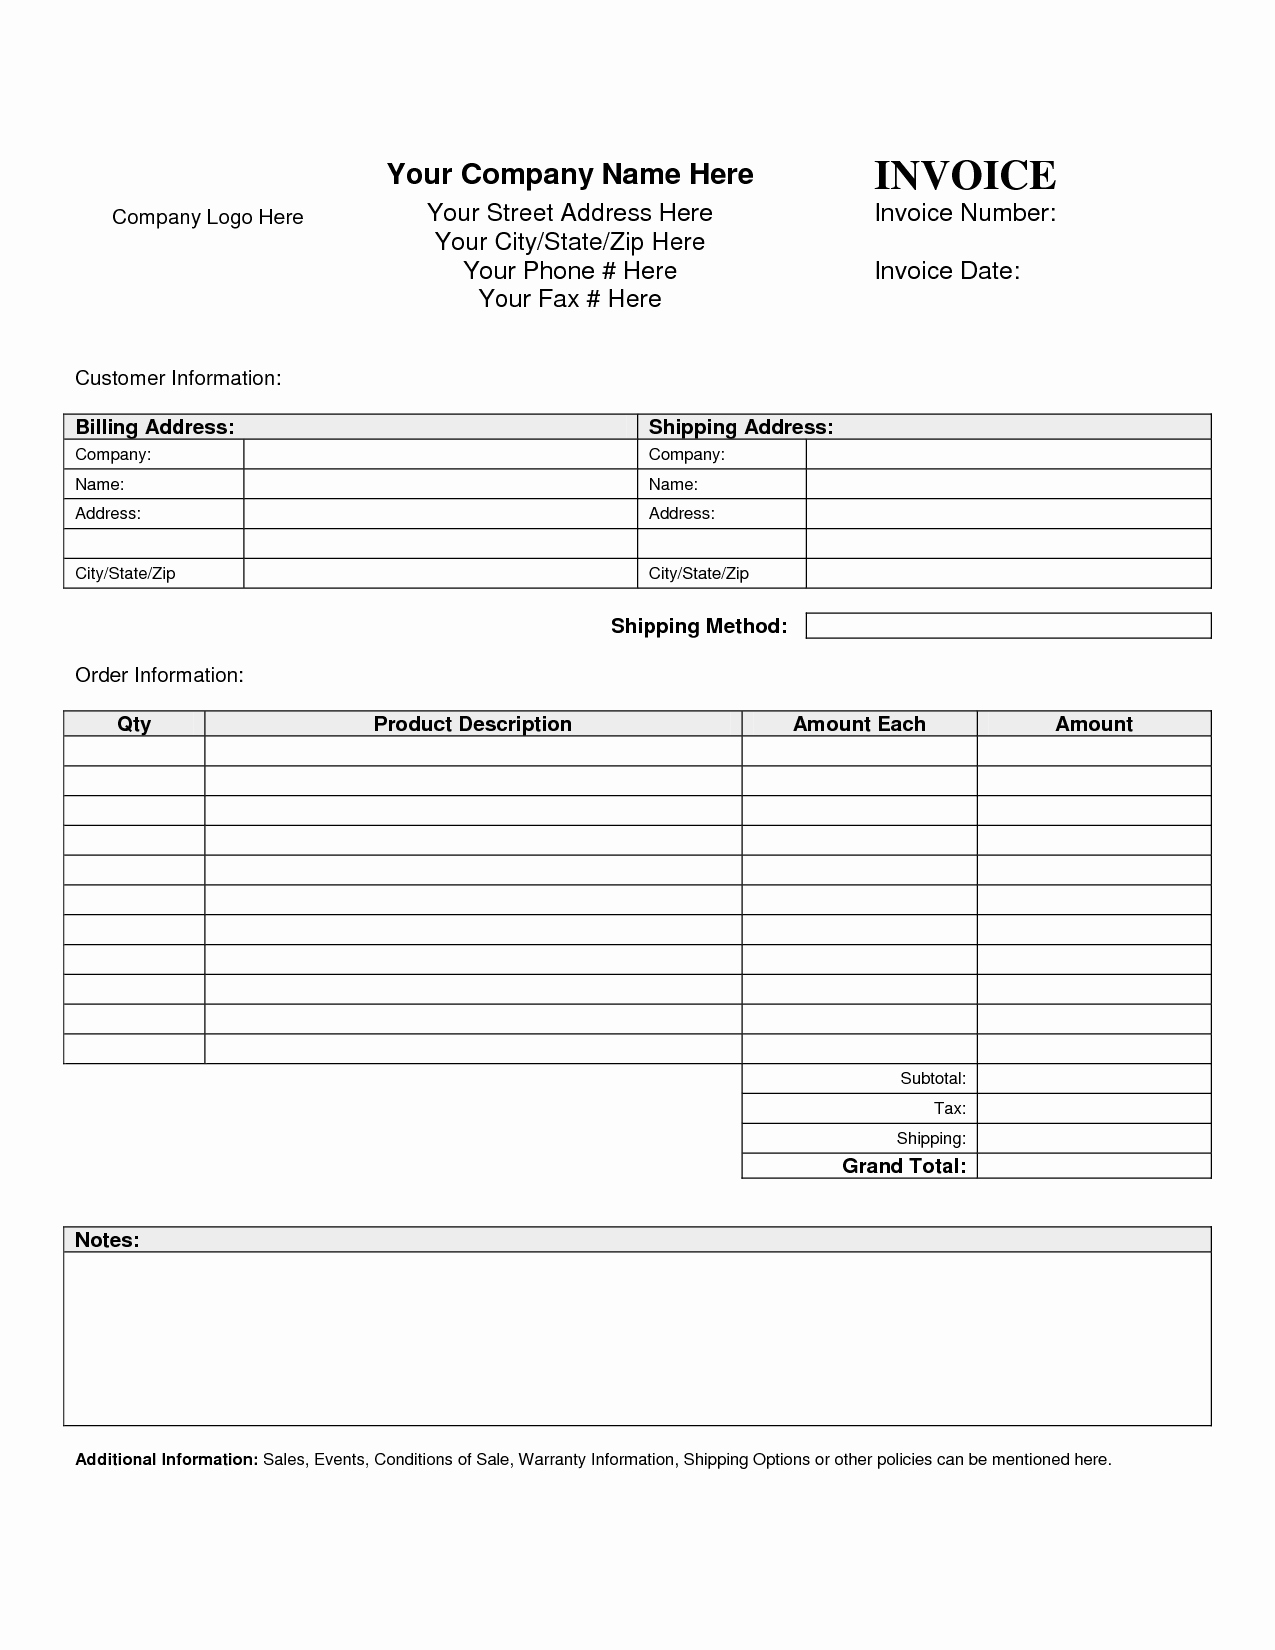 Free Billing Invoice Template Fresh Billing Invoice Template Free